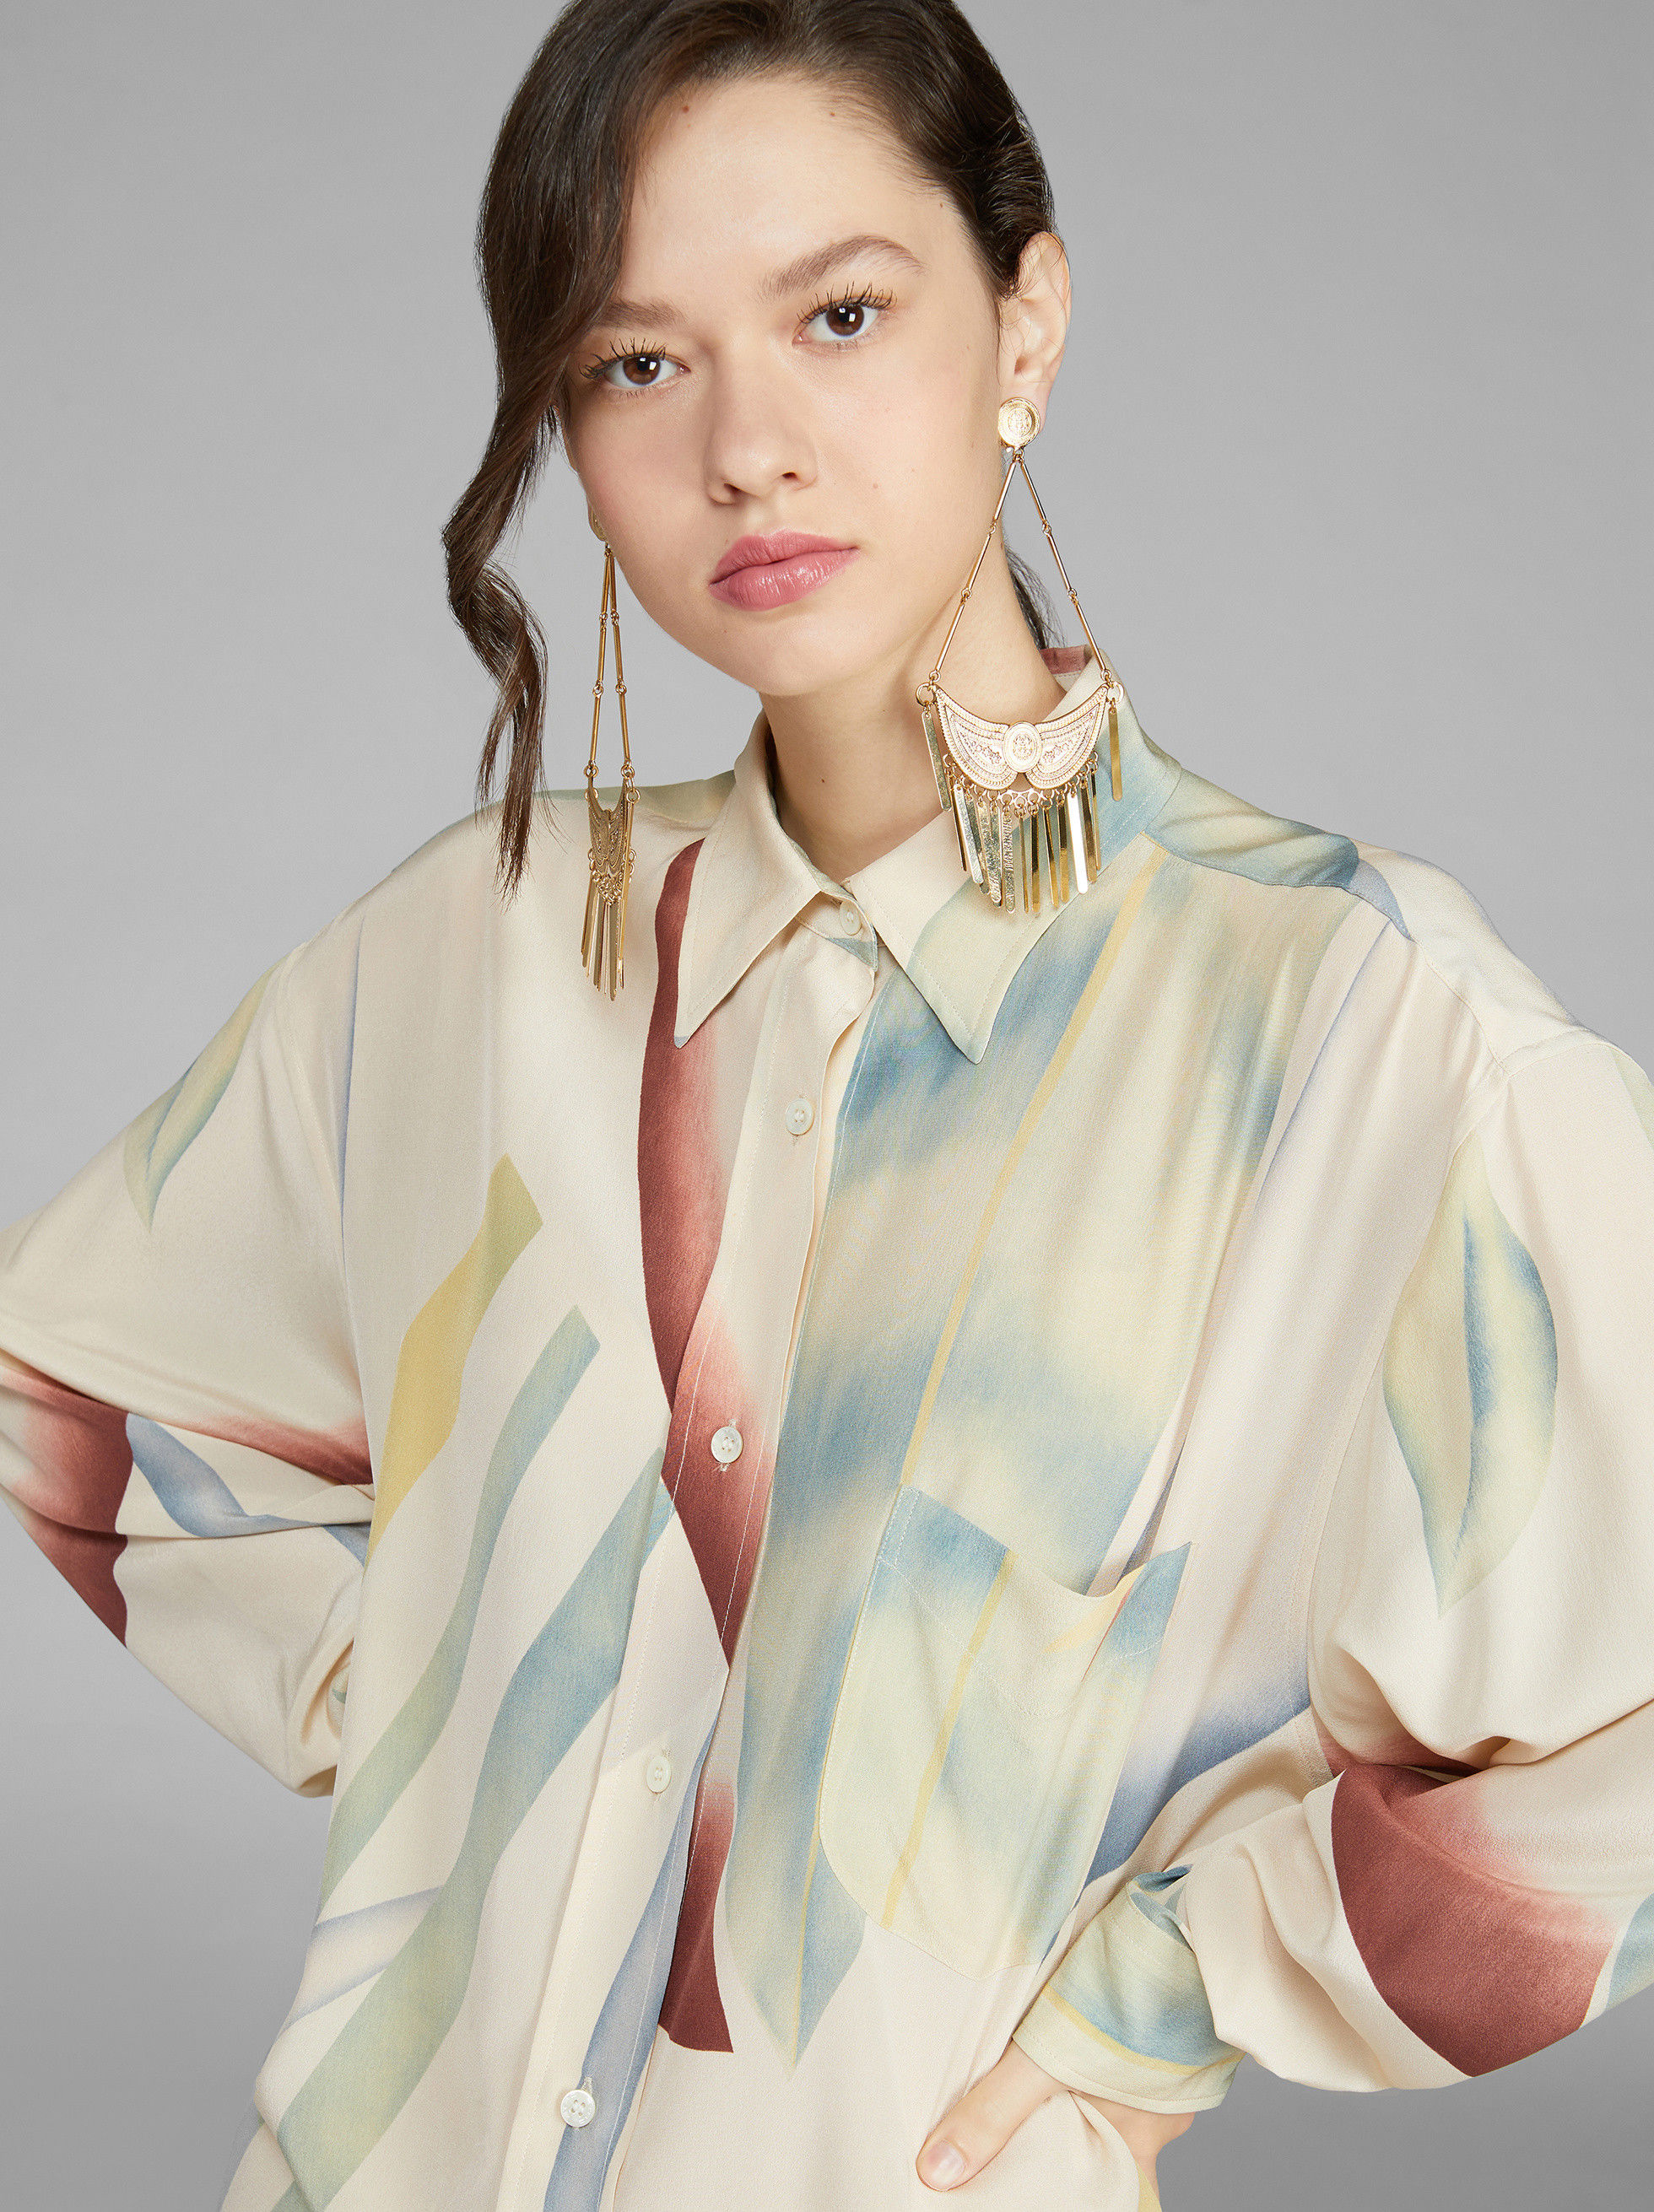 ABSTRACT BLURRED FOLIAGE SHIRT